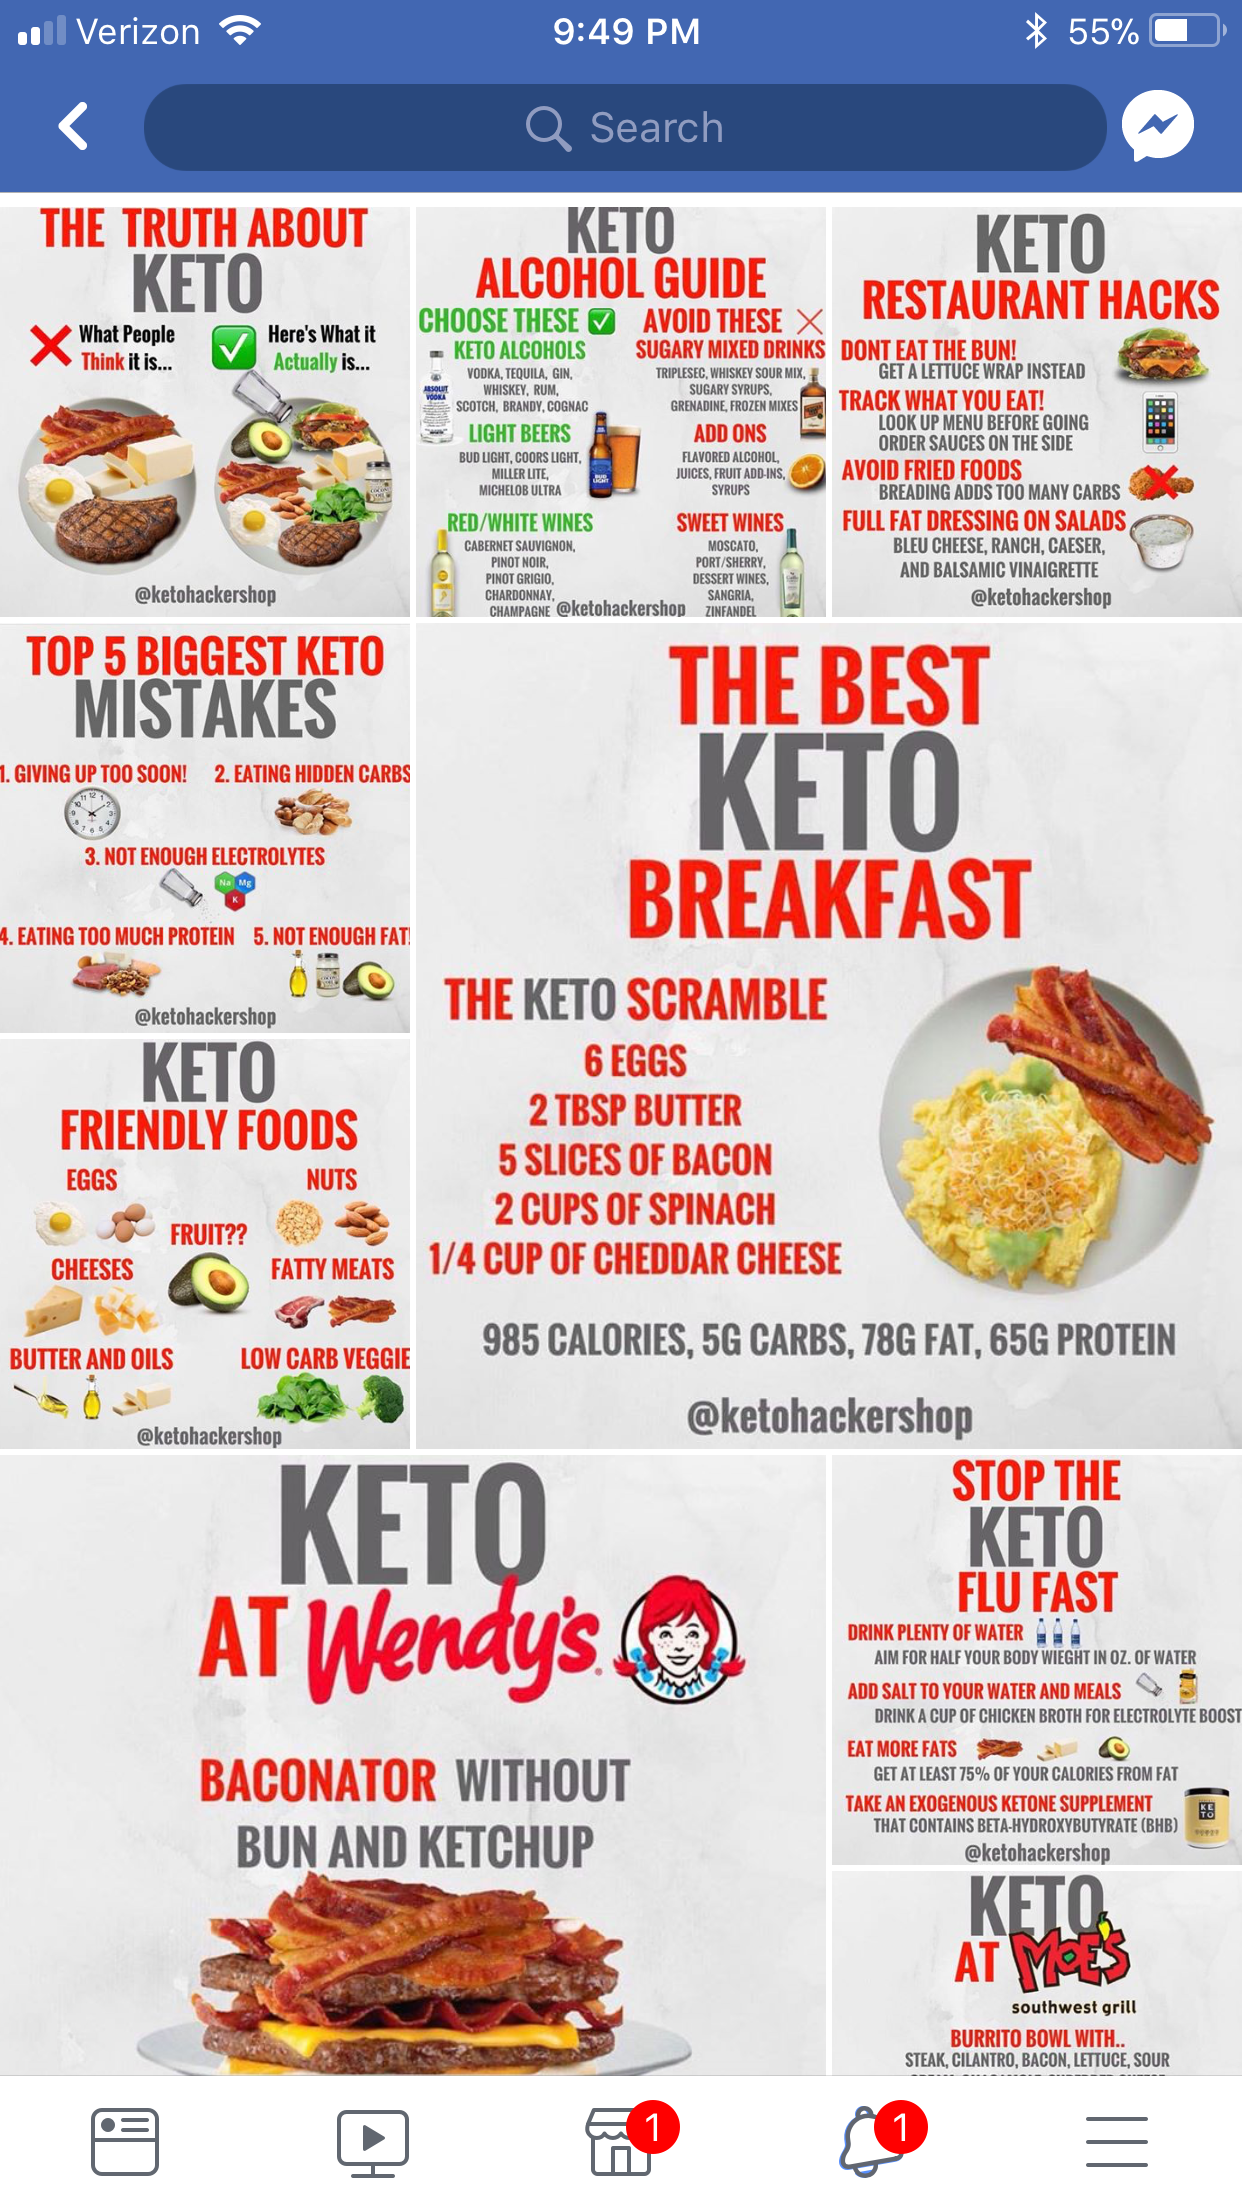 Pin By Katie Wesbrooks On Keto In 2019 Keto Keto